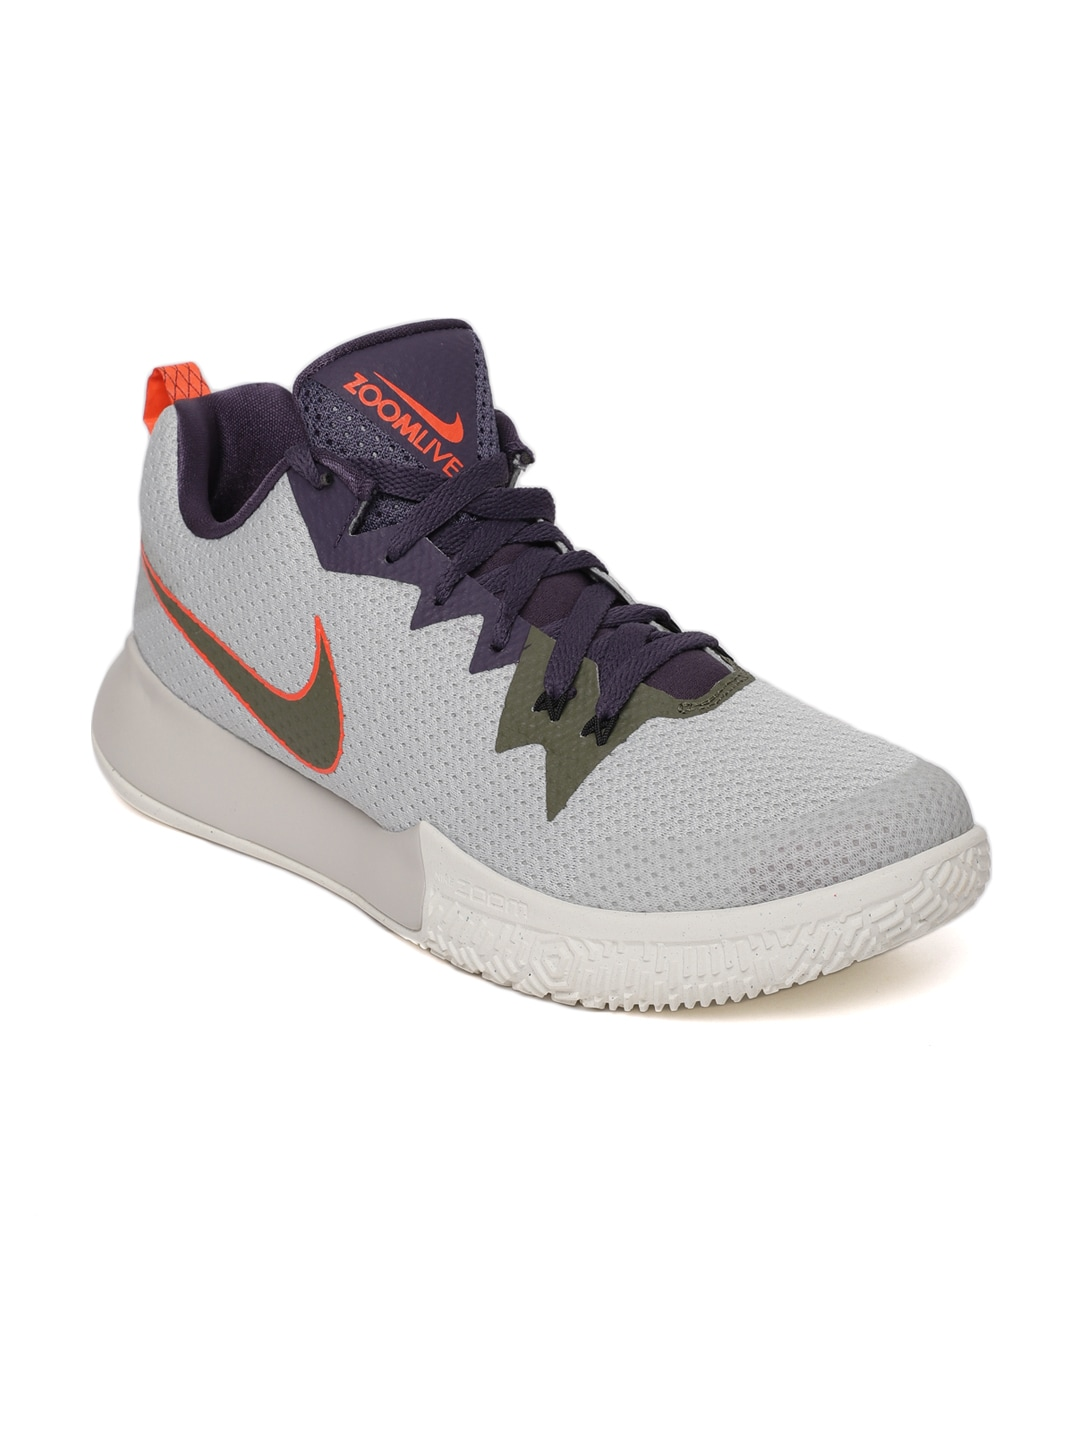 79c3d3b48c22 Men Footwear - Buy Mens Footwear   Shoes Online in India - Myntra